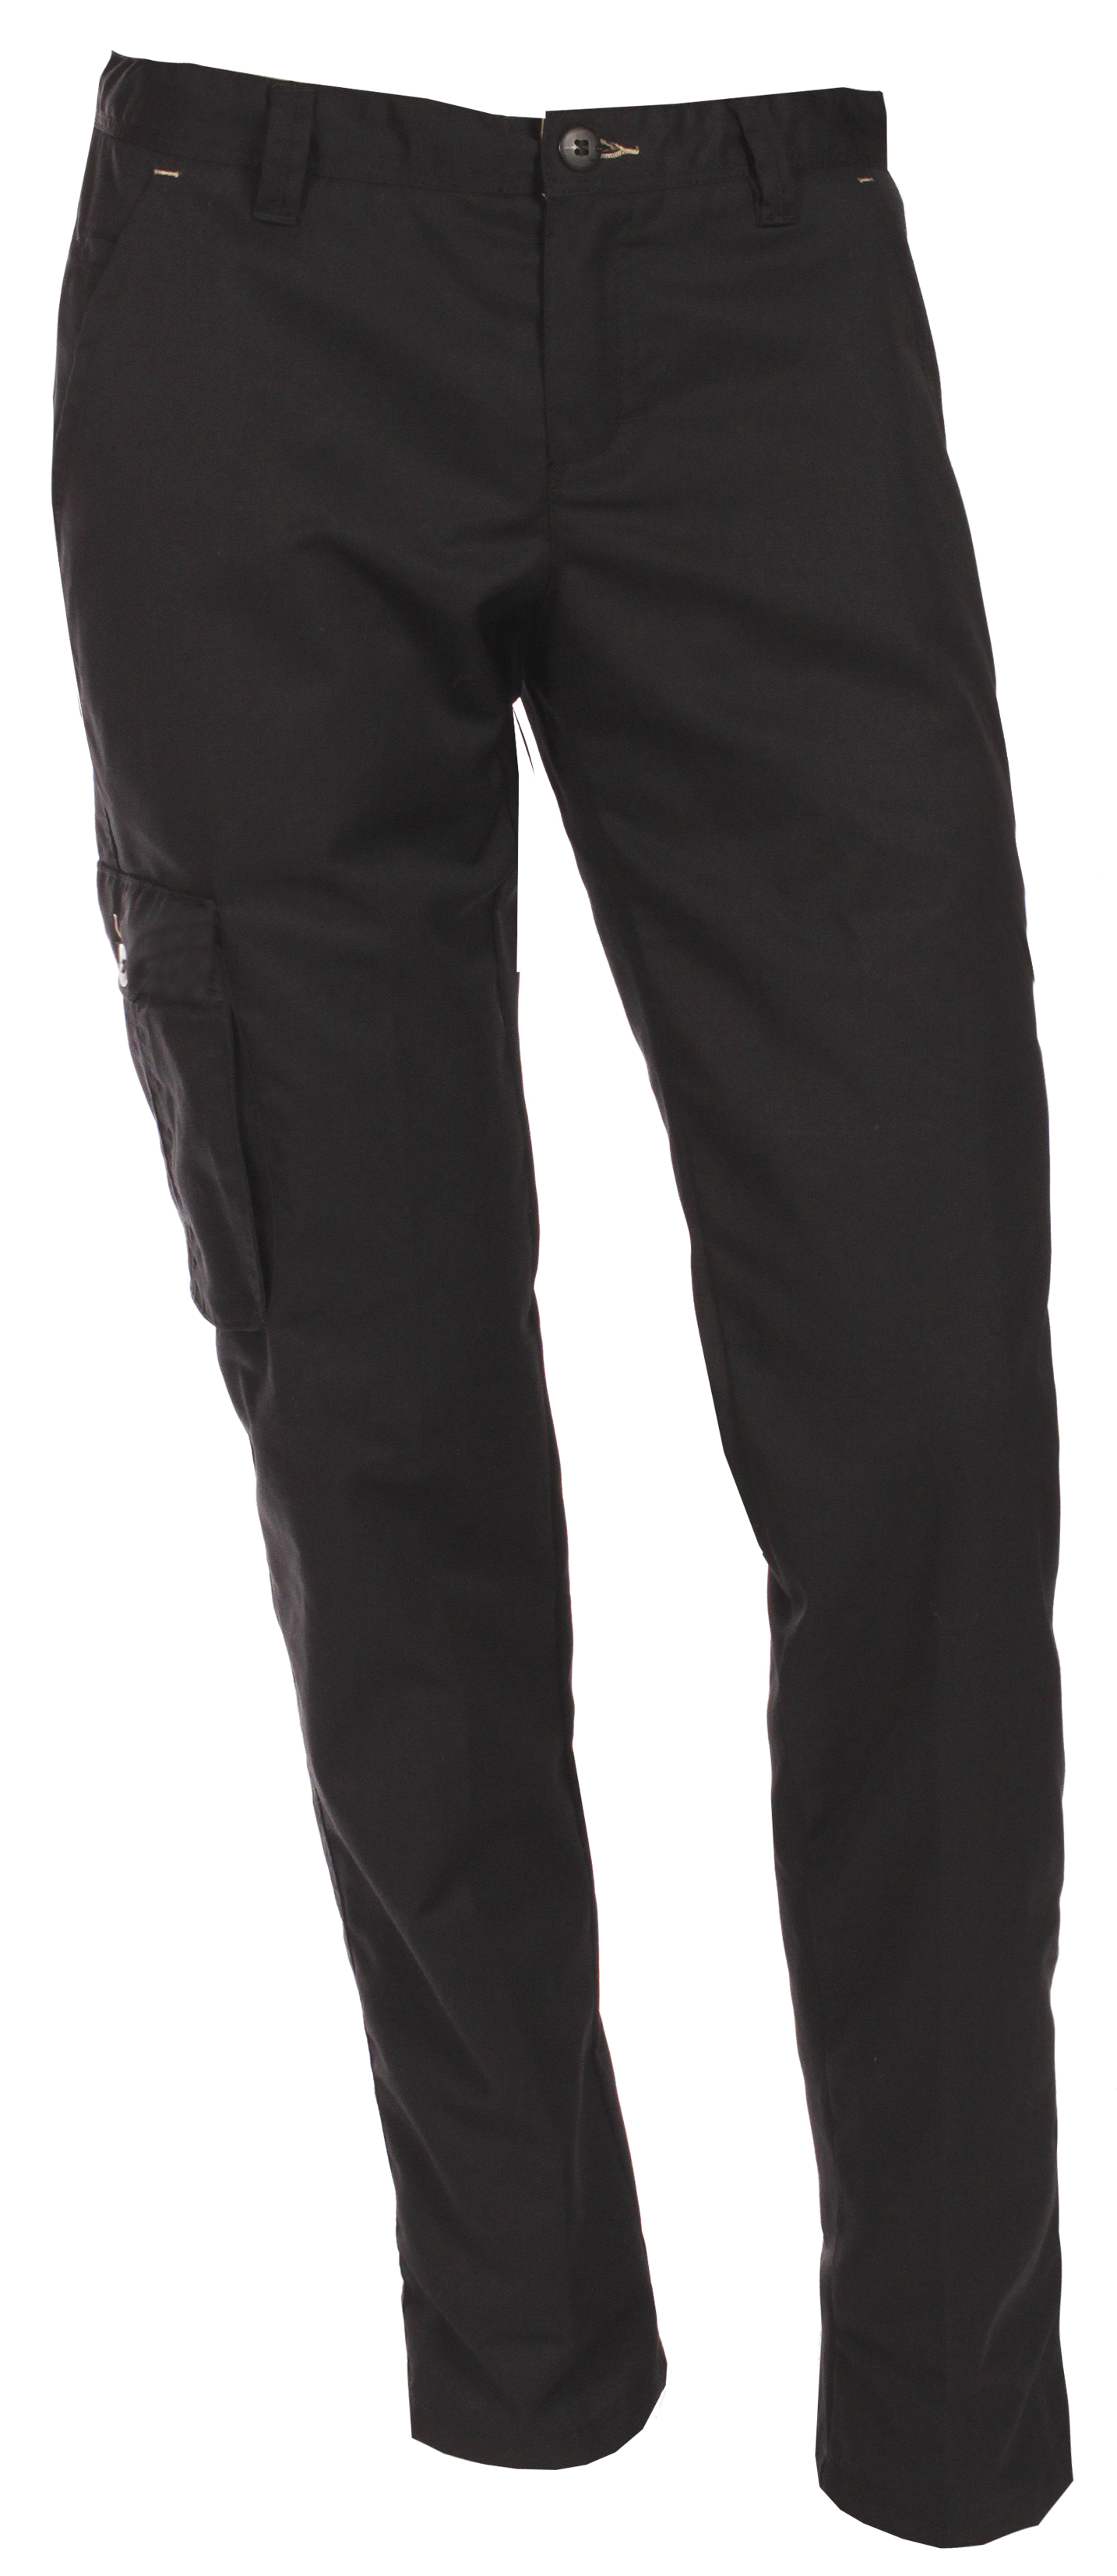 Herre Chino, Perfect Fit (205166200) - Lager program